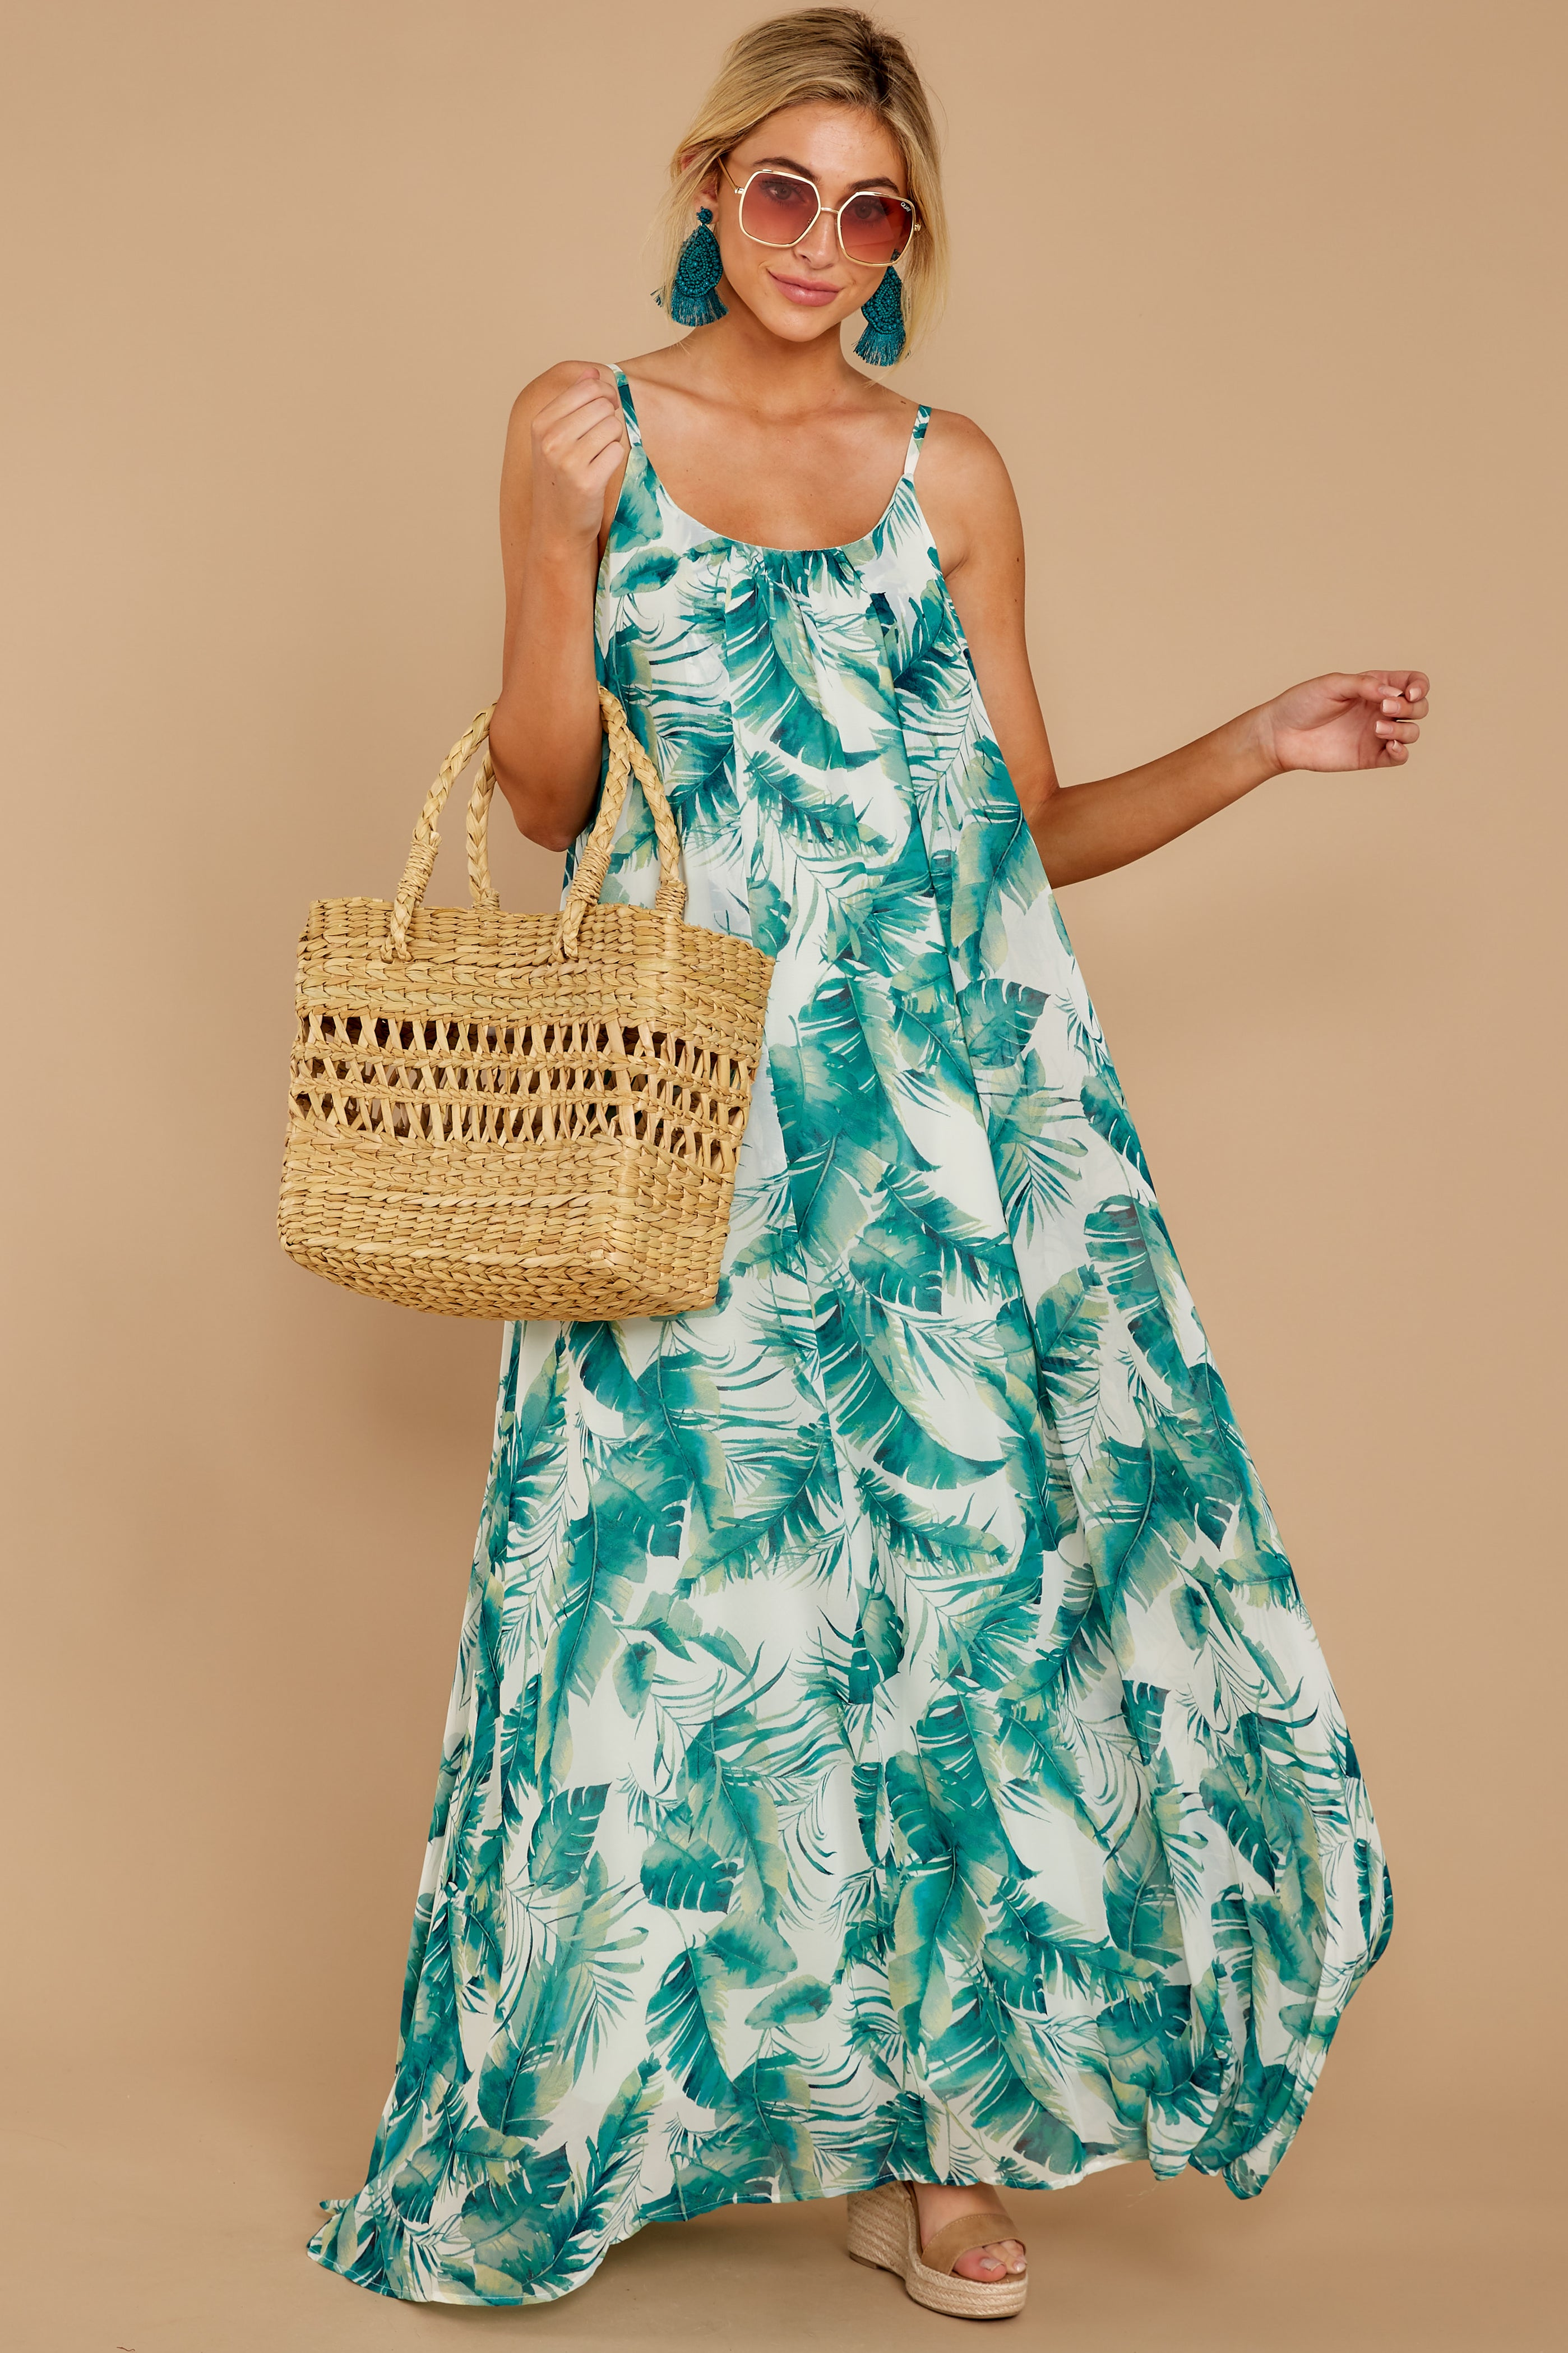 Something About It White And Green Palm Print Maxi Dress